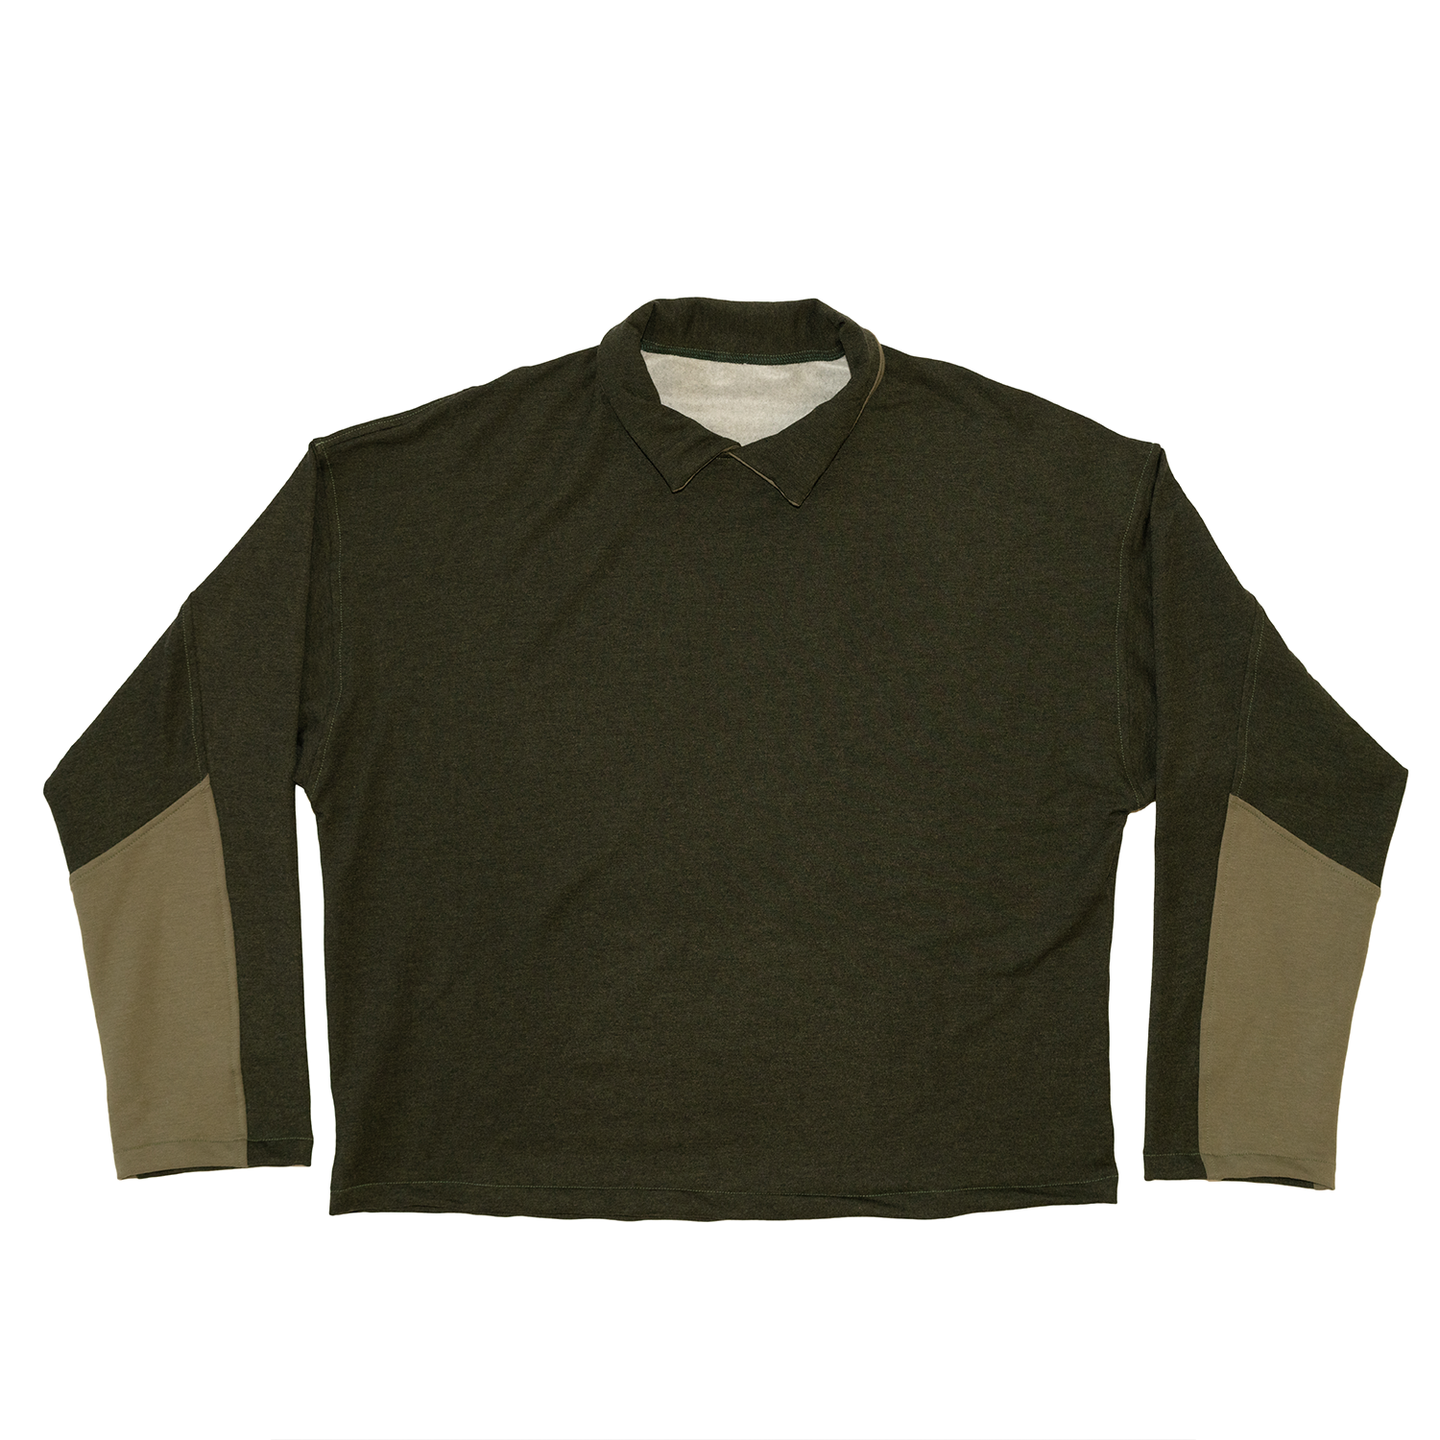 Collared Crewneck in Deep Forest